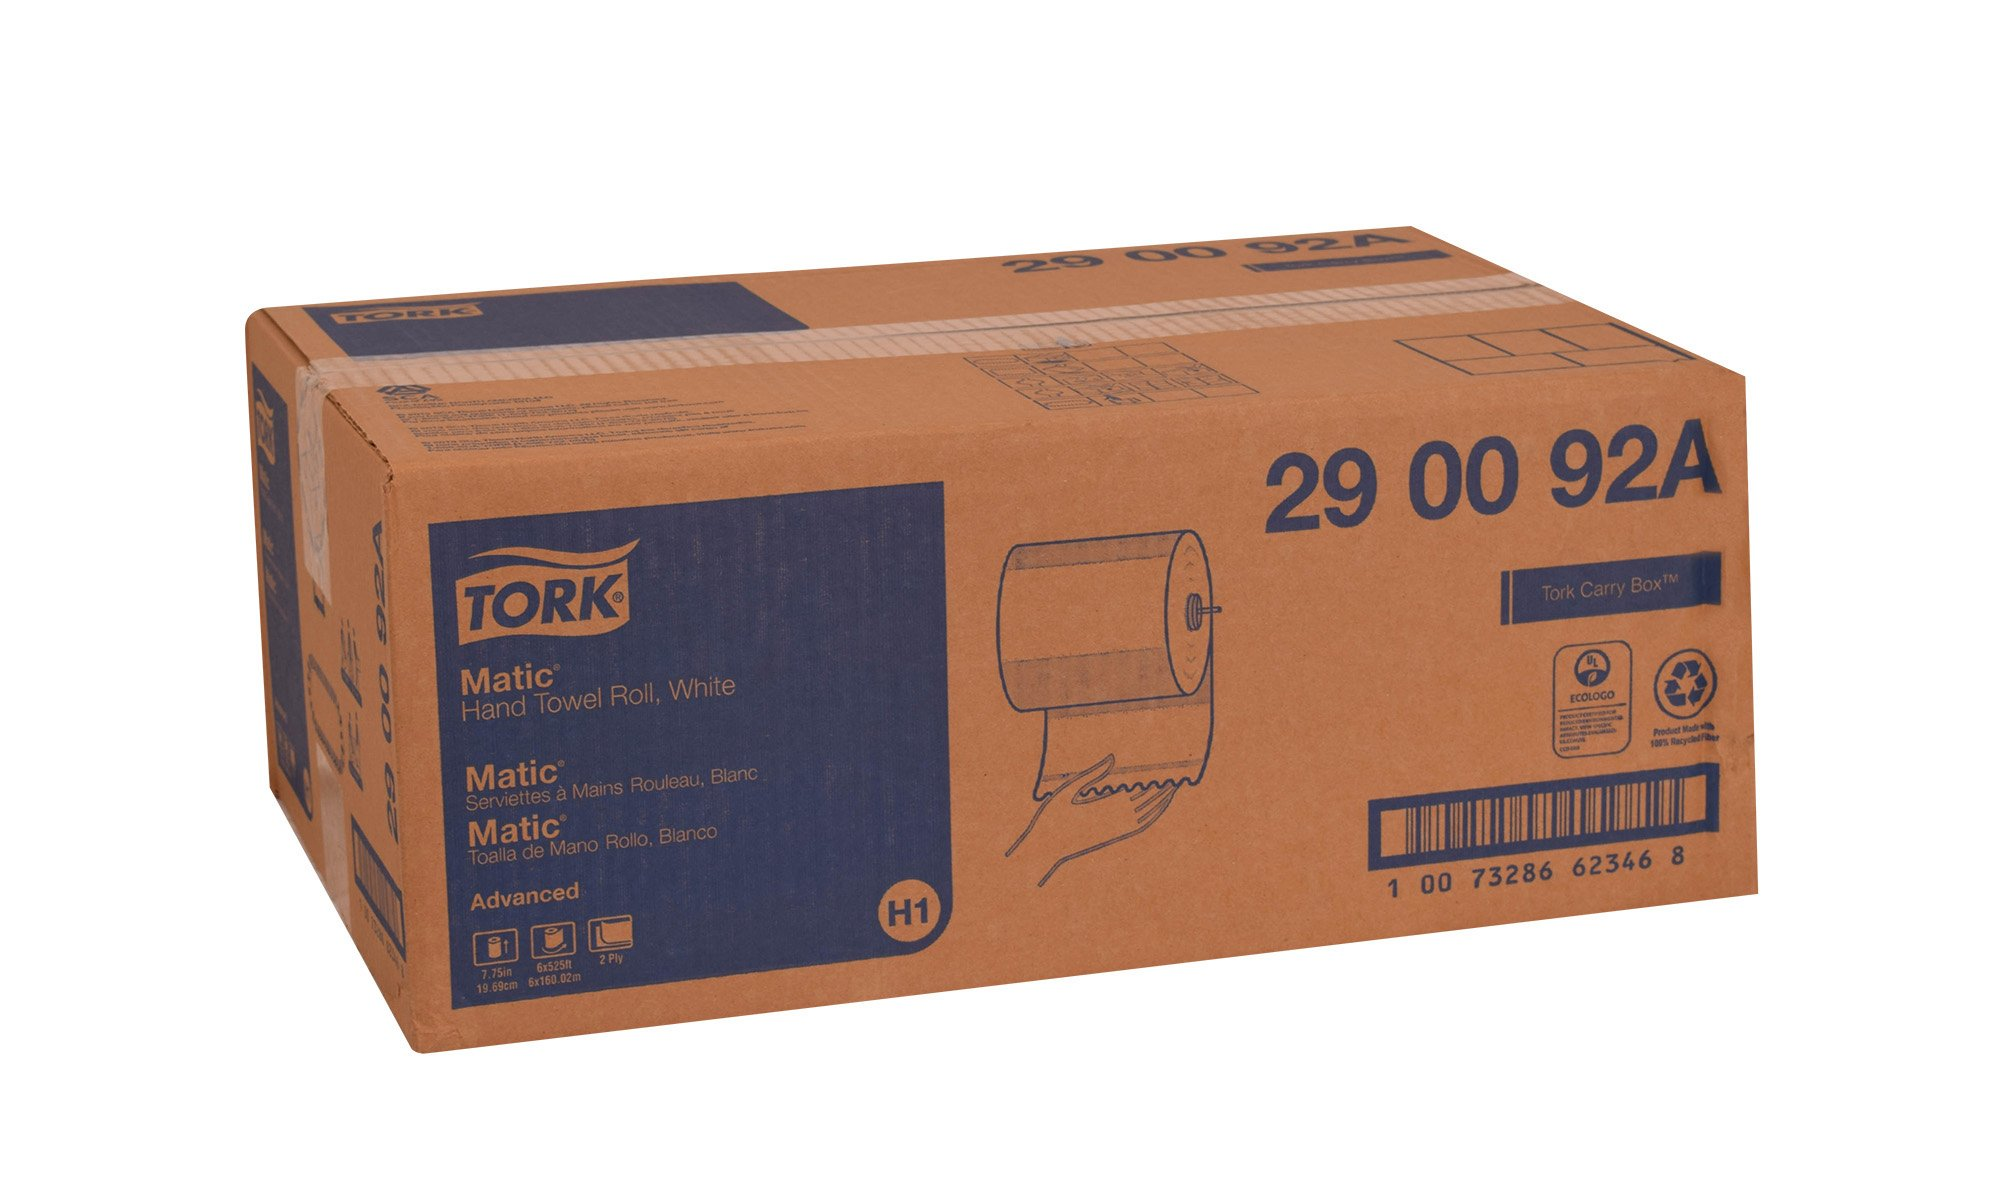 Tork 290092A Advanced Matic Paper Hand Towel Roll, 2-Ply, 7.7'' Width x 525' Length, White, (Case of 6 Rolls, 525 Feet per Roll, 3,150 Feet) by Tork (Image #9)